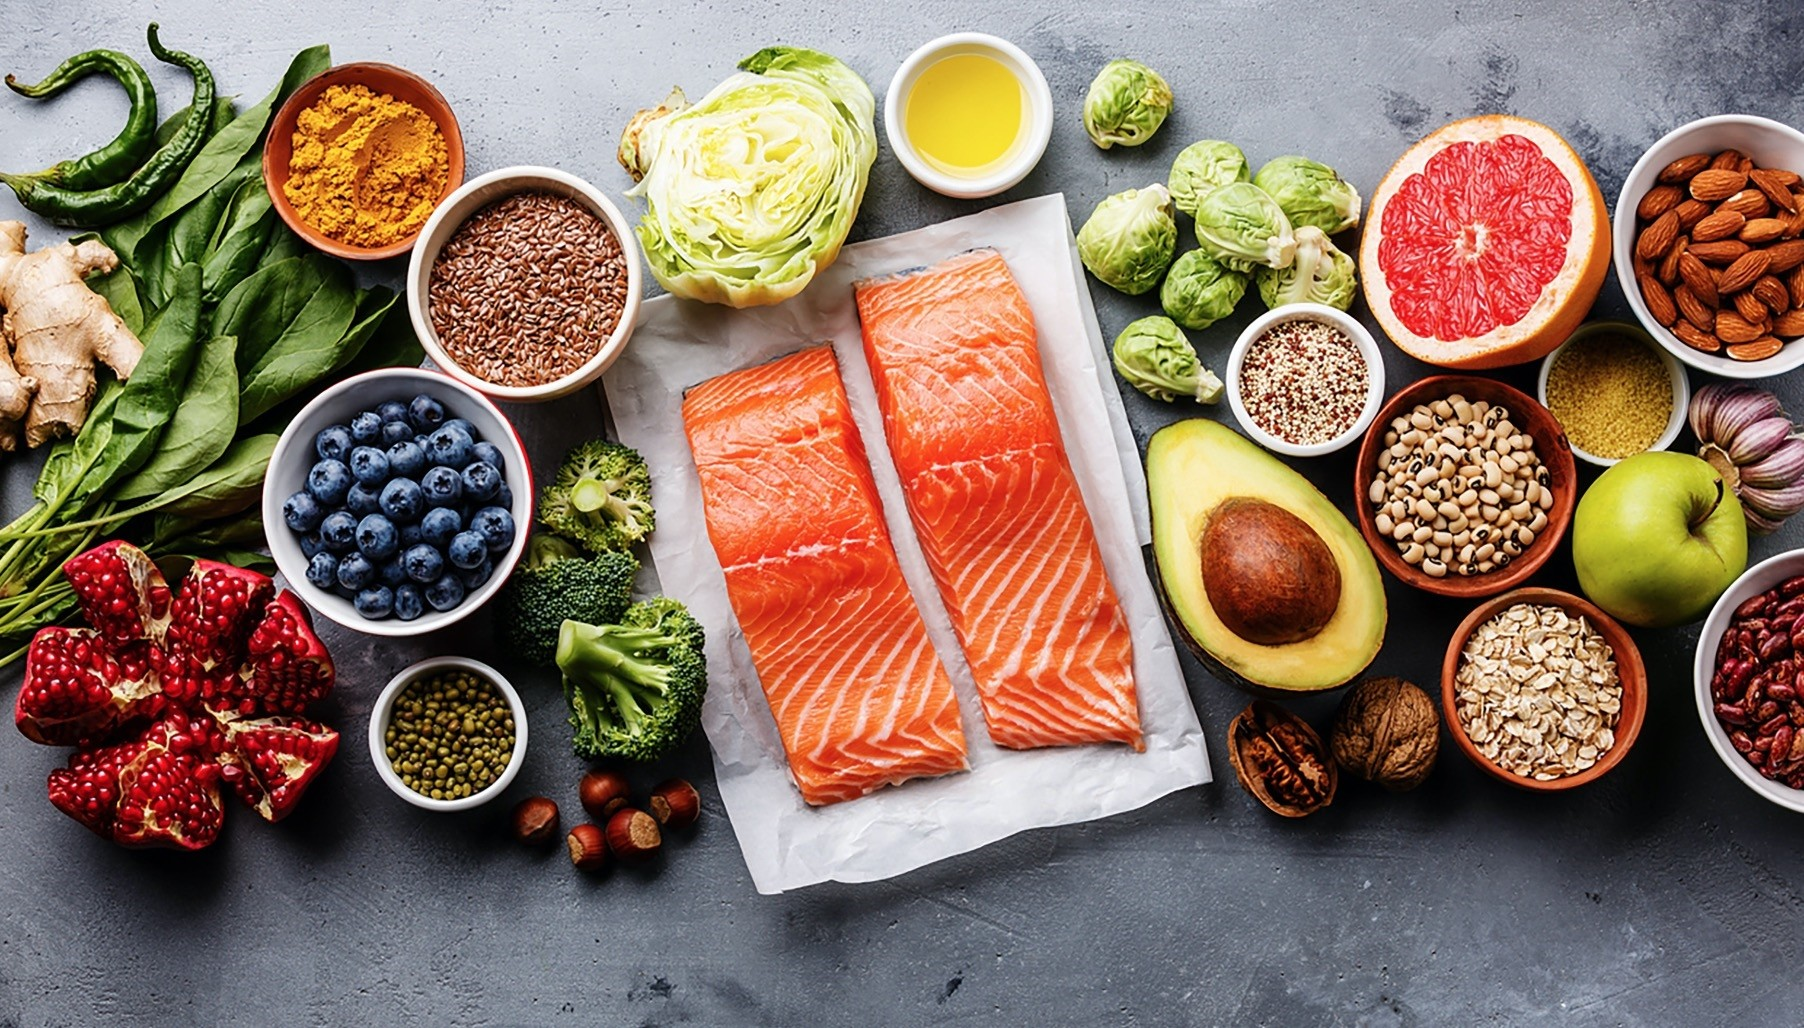 Fish, avocado, walnut and broccoli are among the nutrients that you should consume for a soft skin.